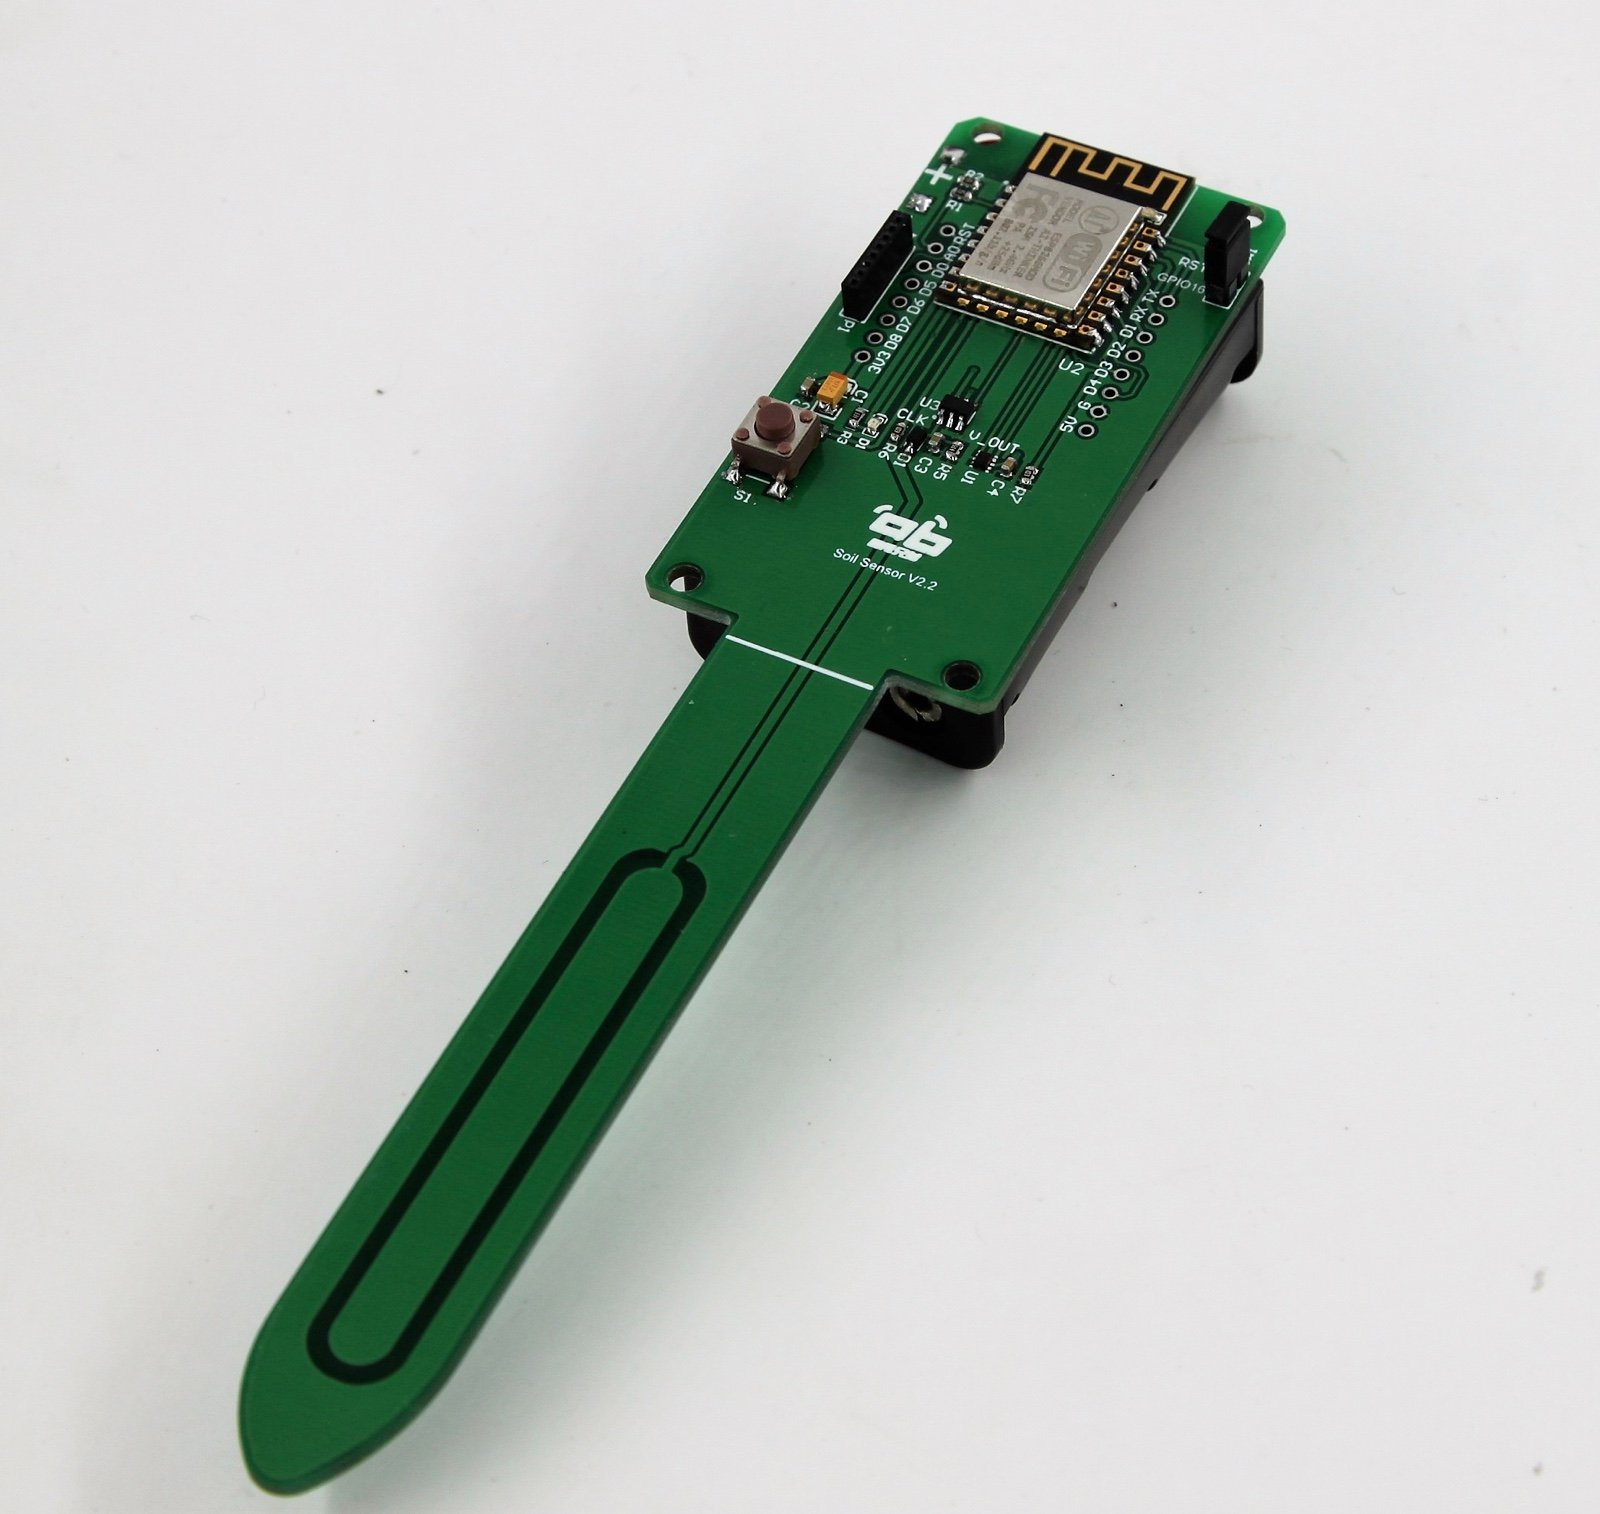 Esp soil moisture sensor rev 2 1 from aprbrother on tindie for Soil moisture sensor